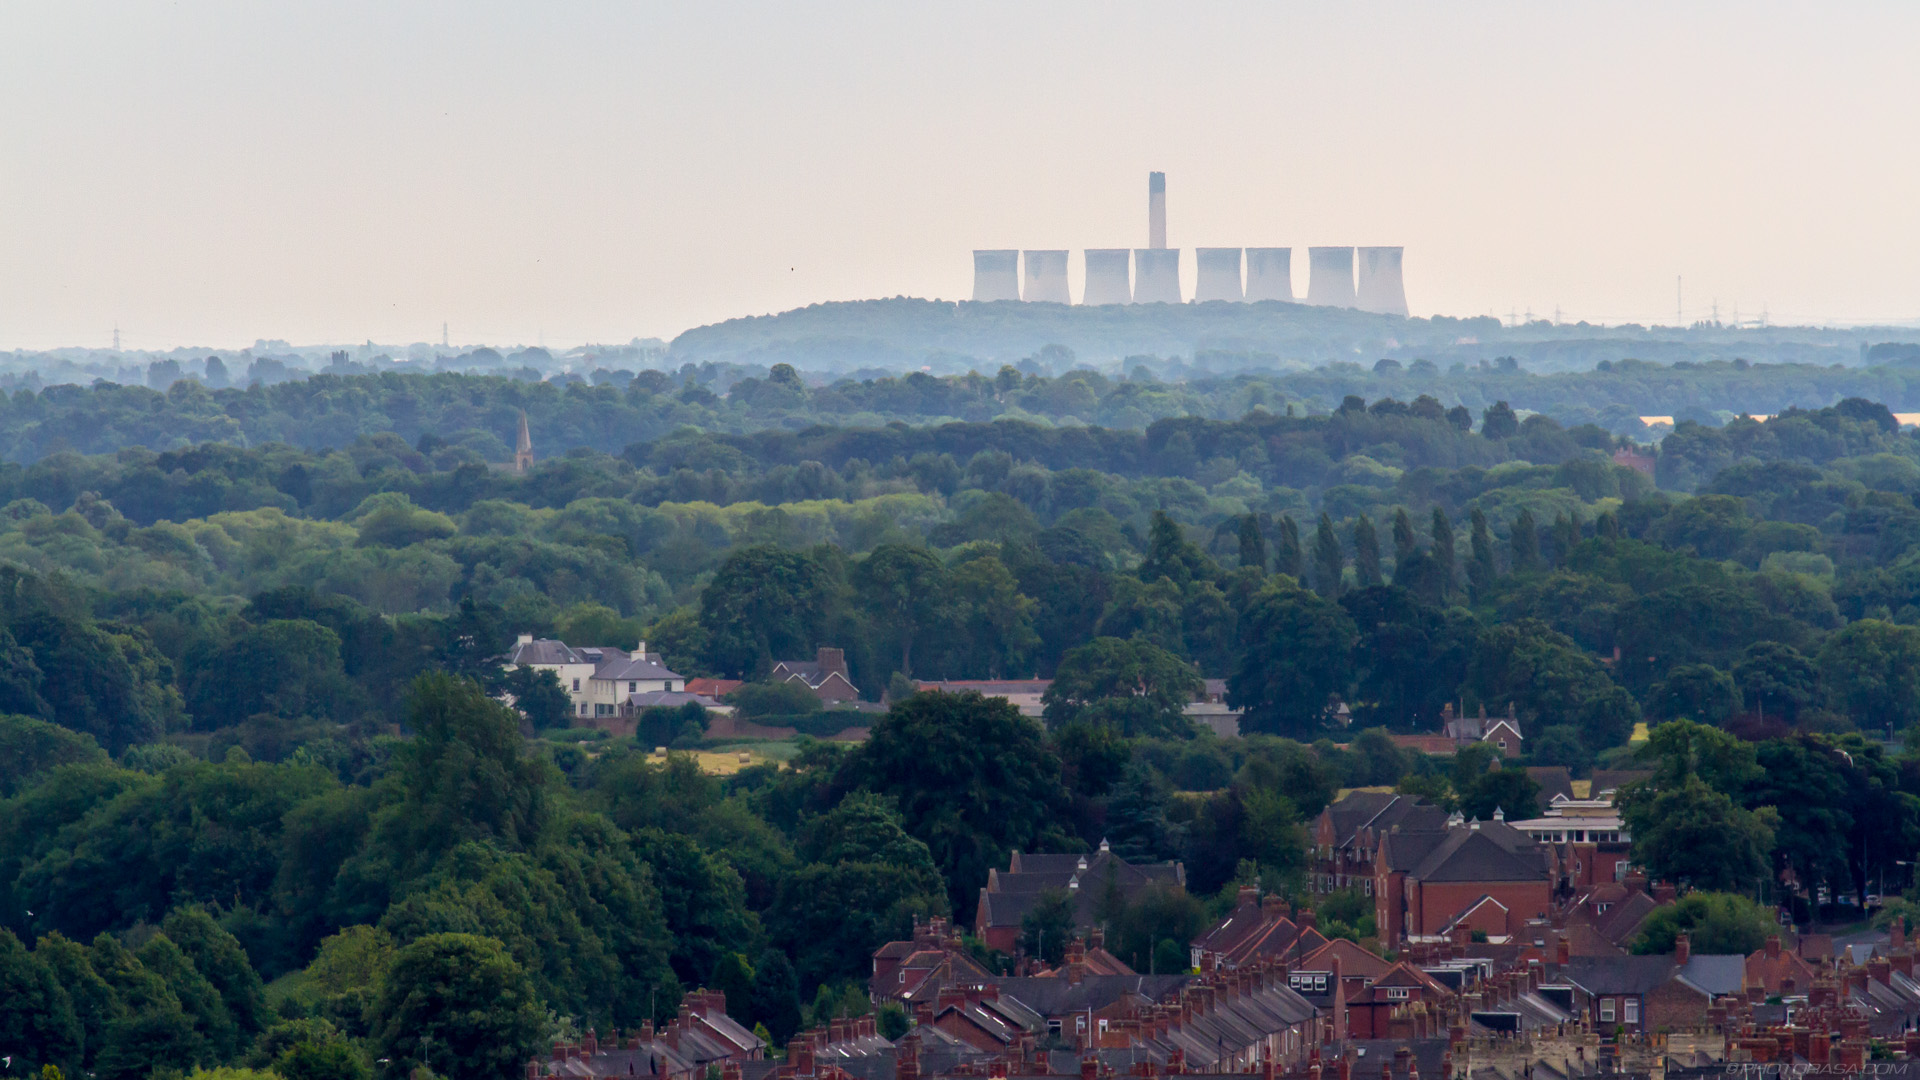 http://photorasa.com/yorkminster-cathedral/eggborough-power-station-from-yorkminster-tower/